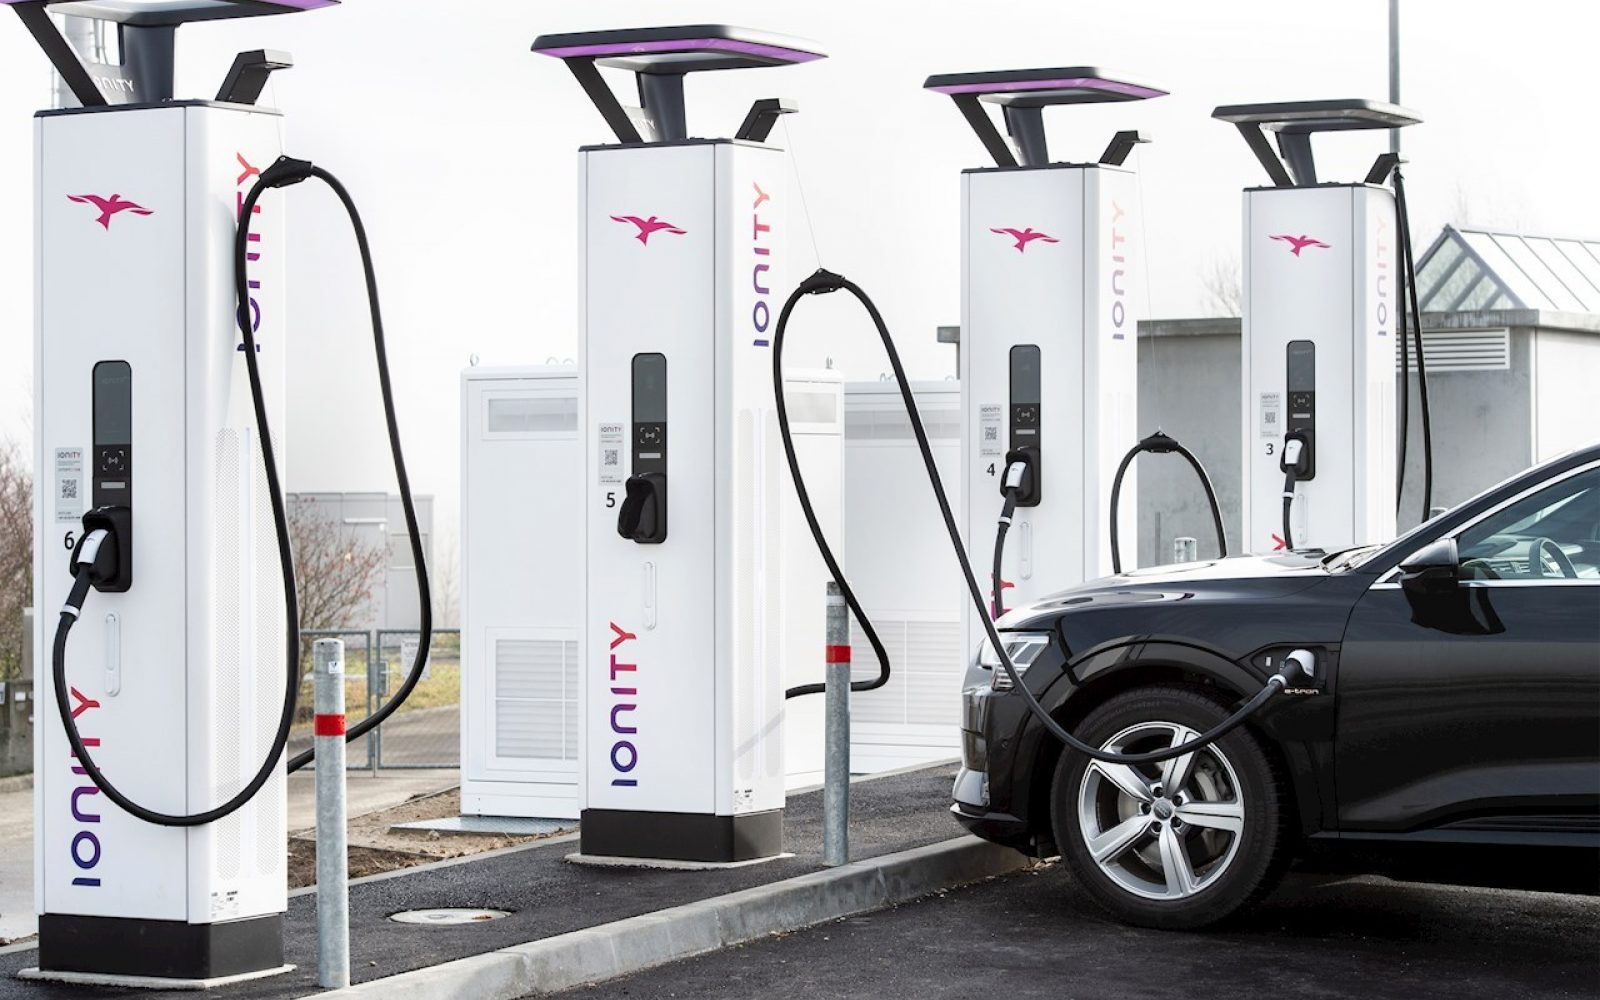 Ultra-rapid chargers - such as the 350kW chargers on offer from IONITY - are becoming increasingly more popular. Image: ABB/IONITY